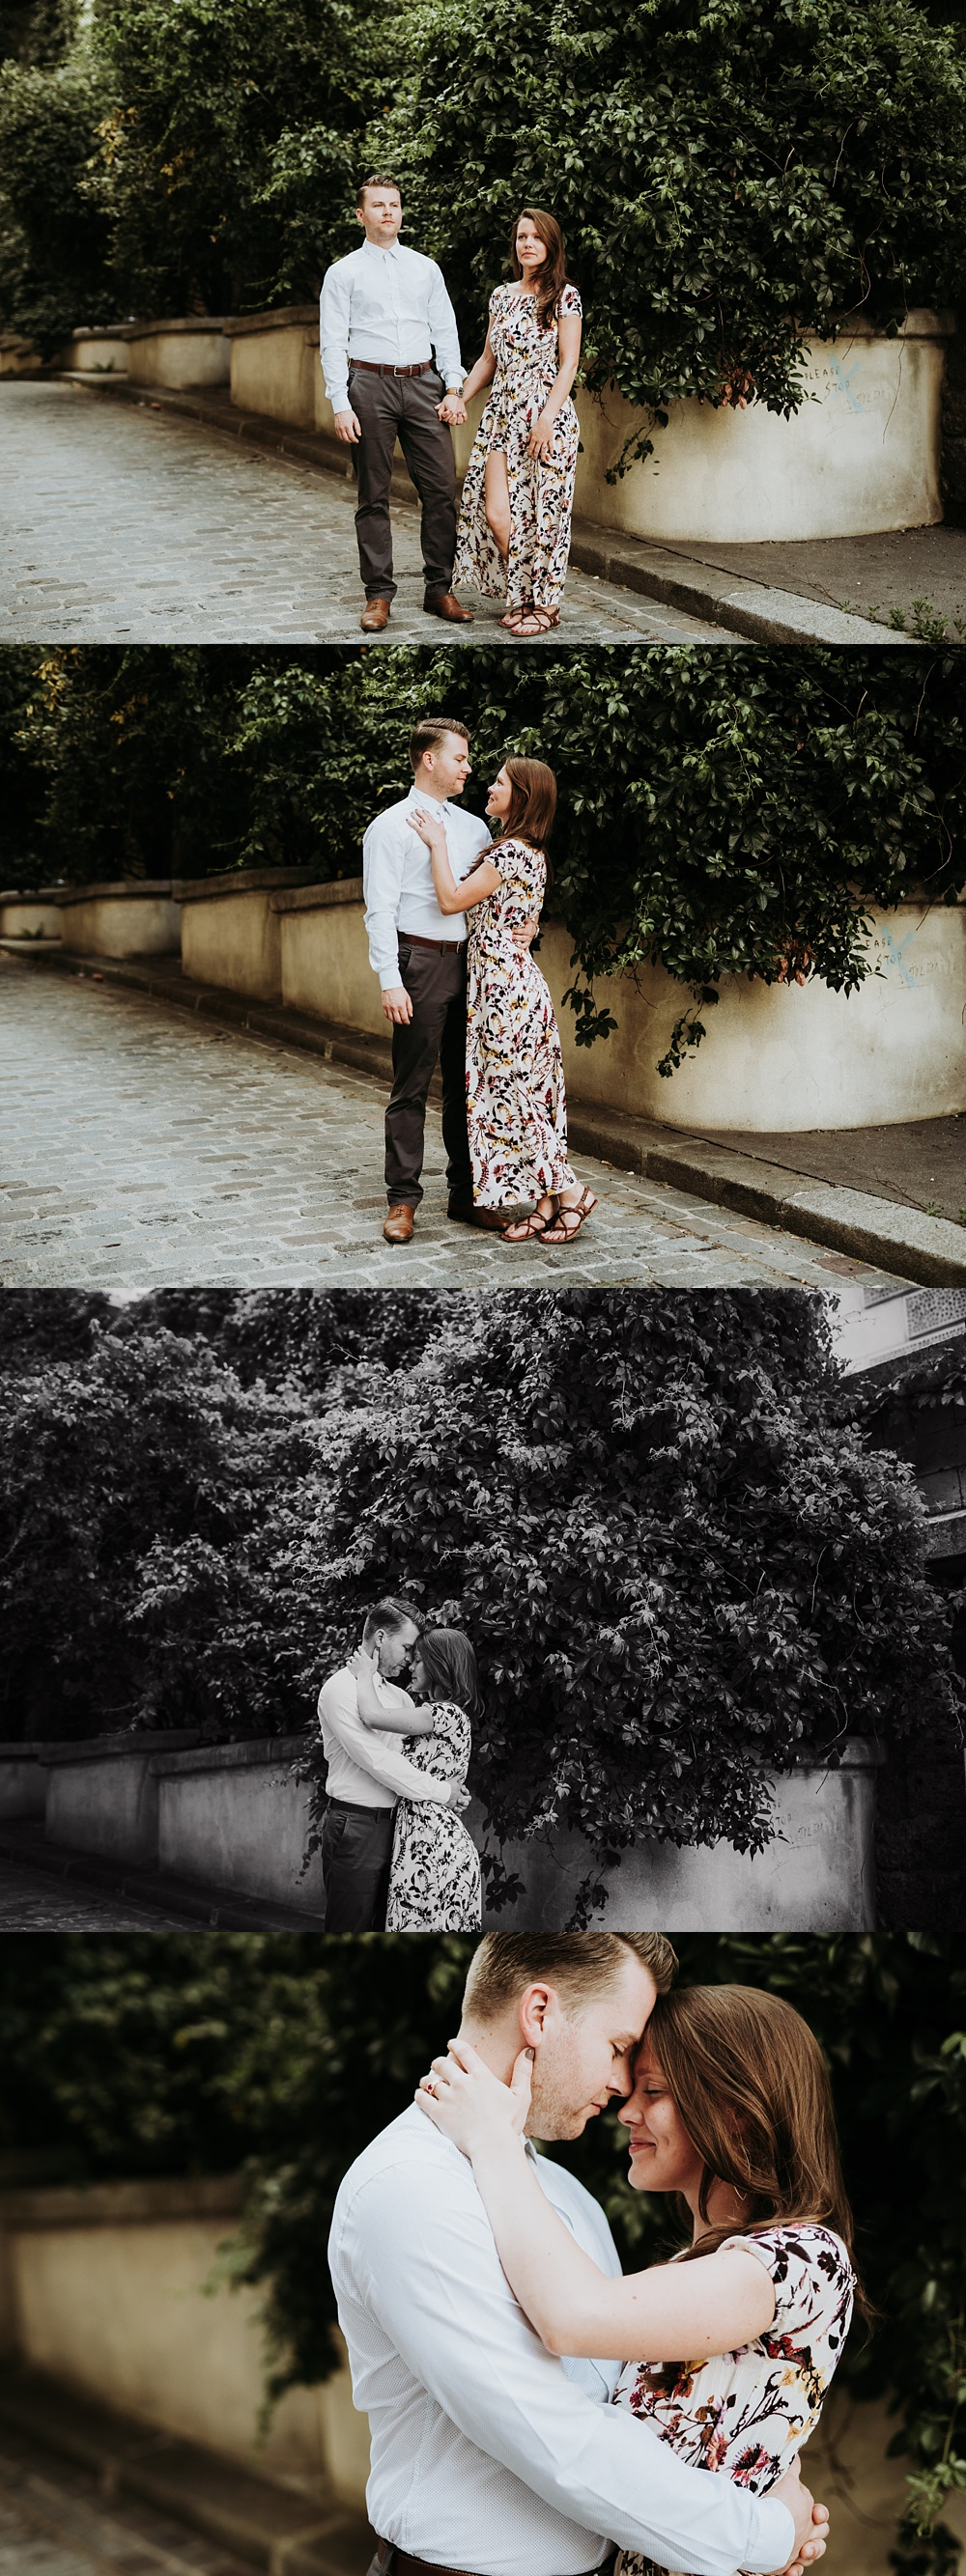 Photographe Mariage Paris Wedding Photographer Paris